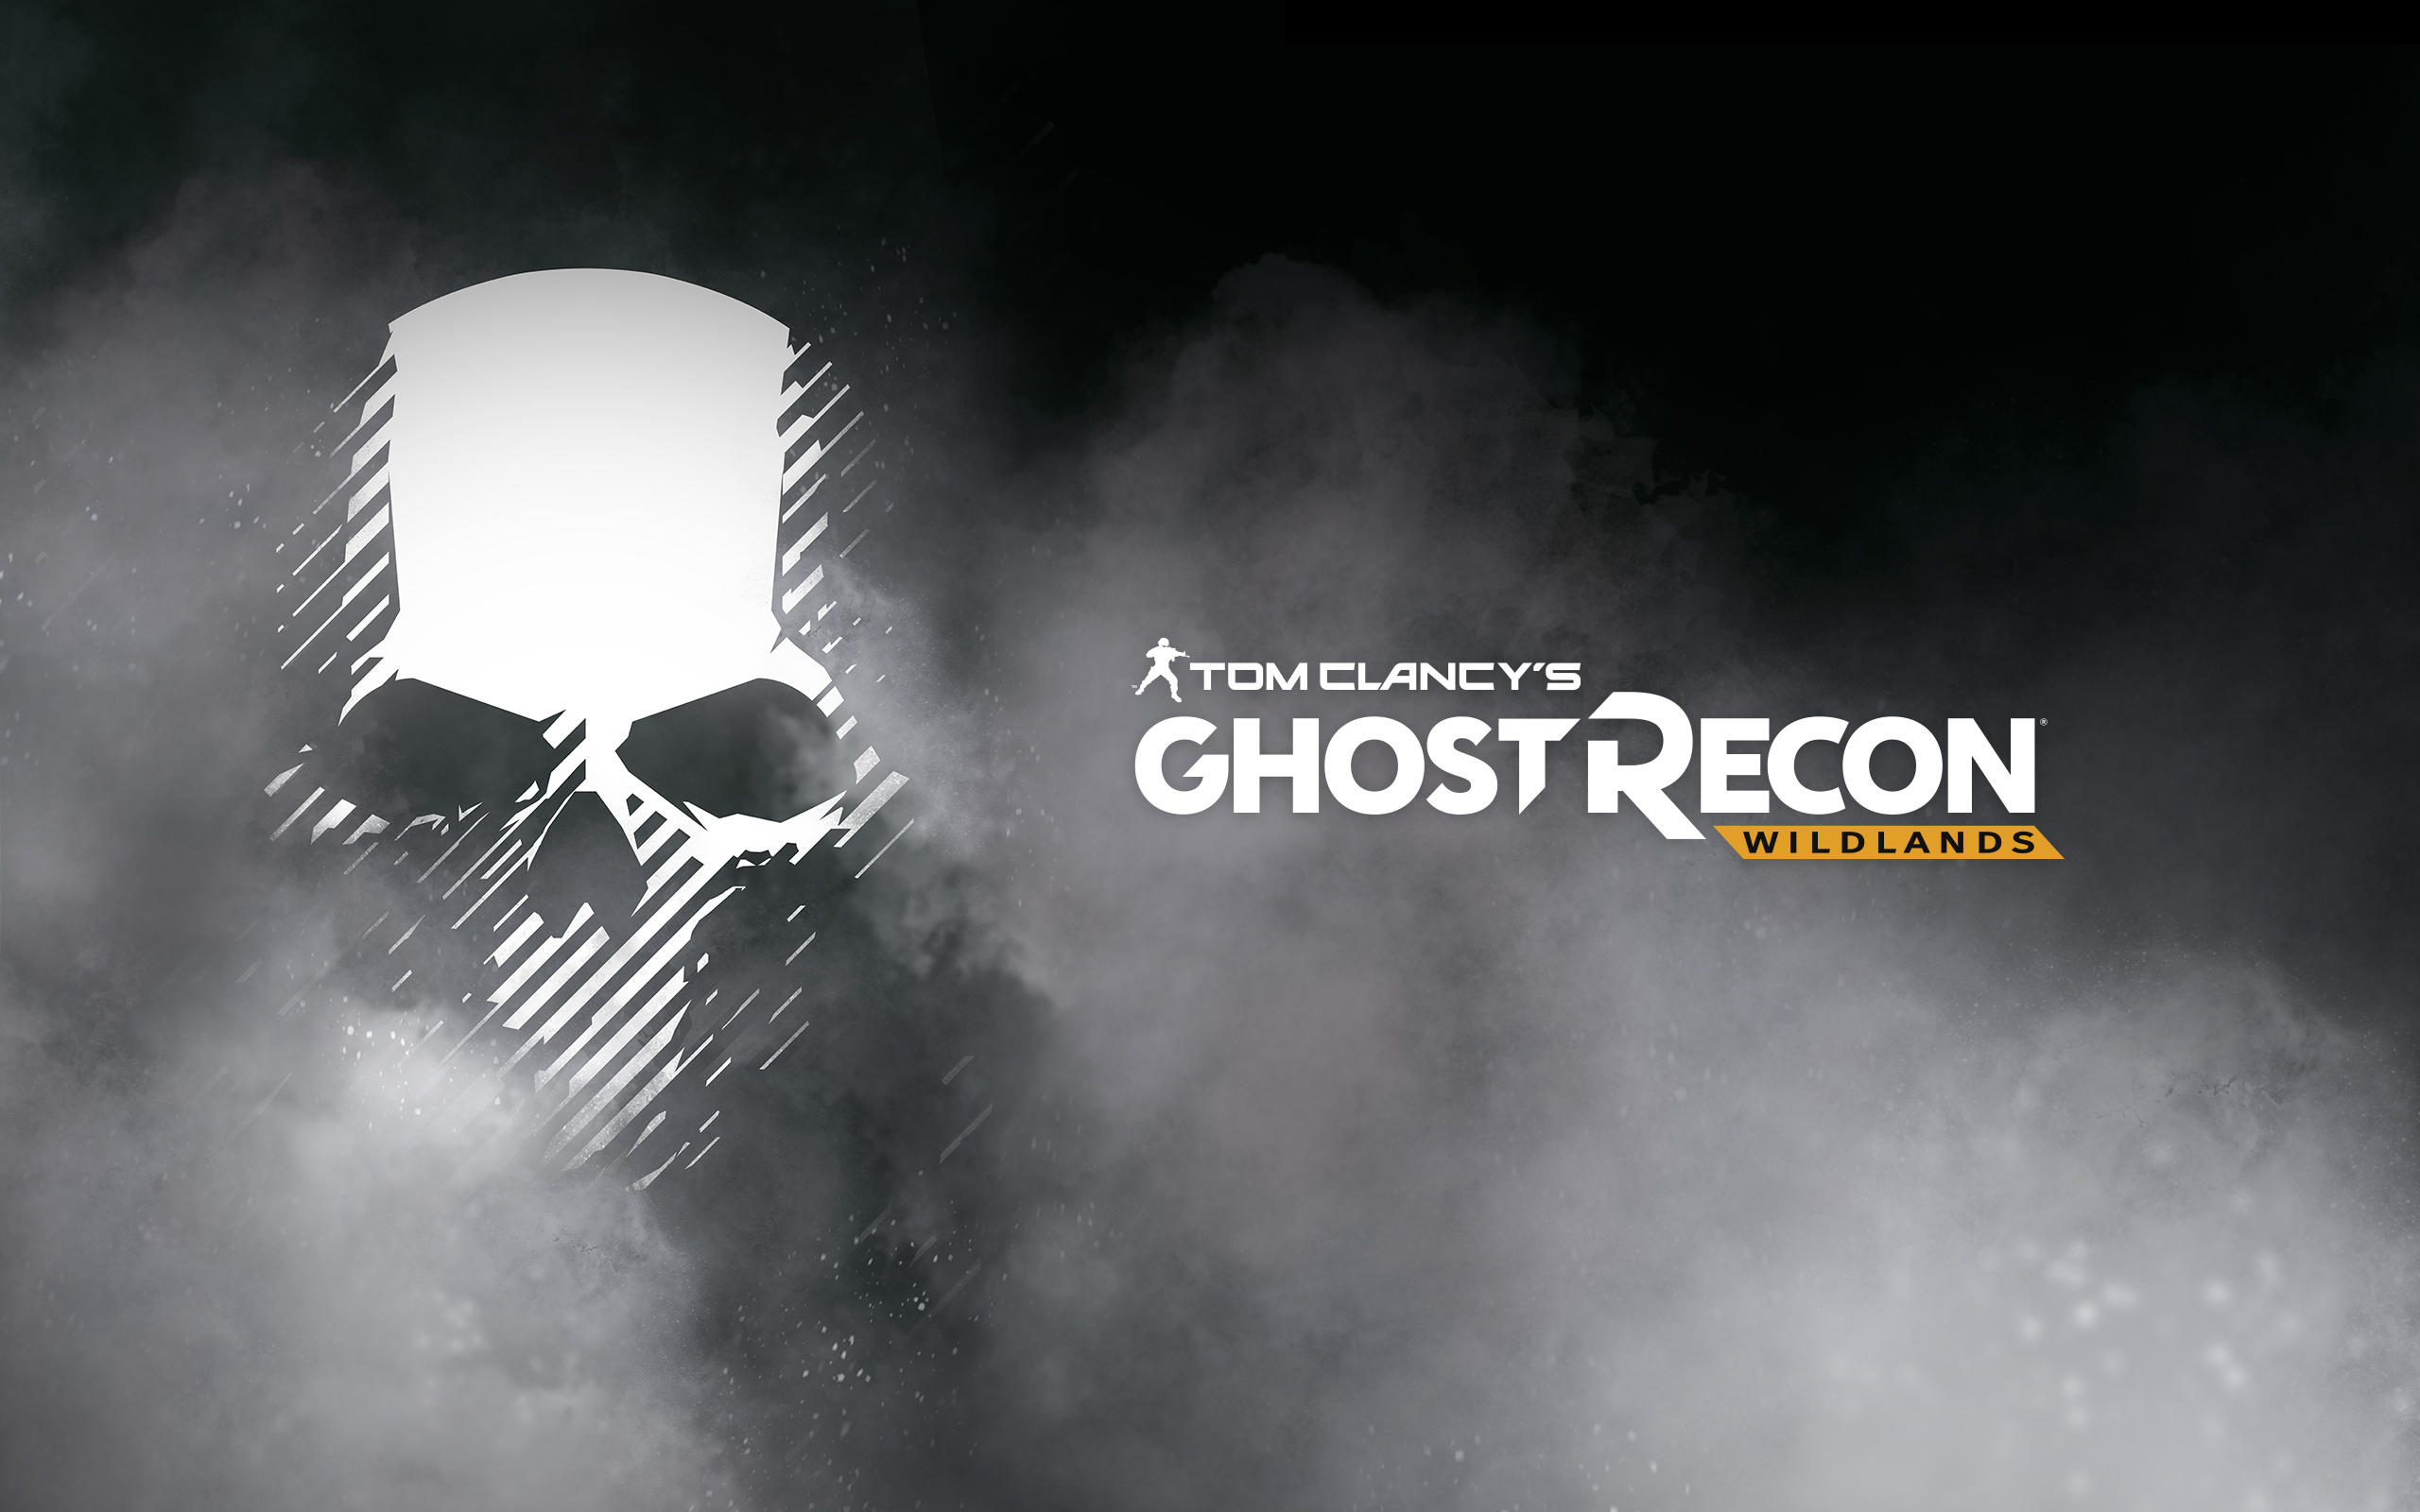 Tom Clancys Ghost Recon Wildlands Skull Hd Games 4k Wallpapers